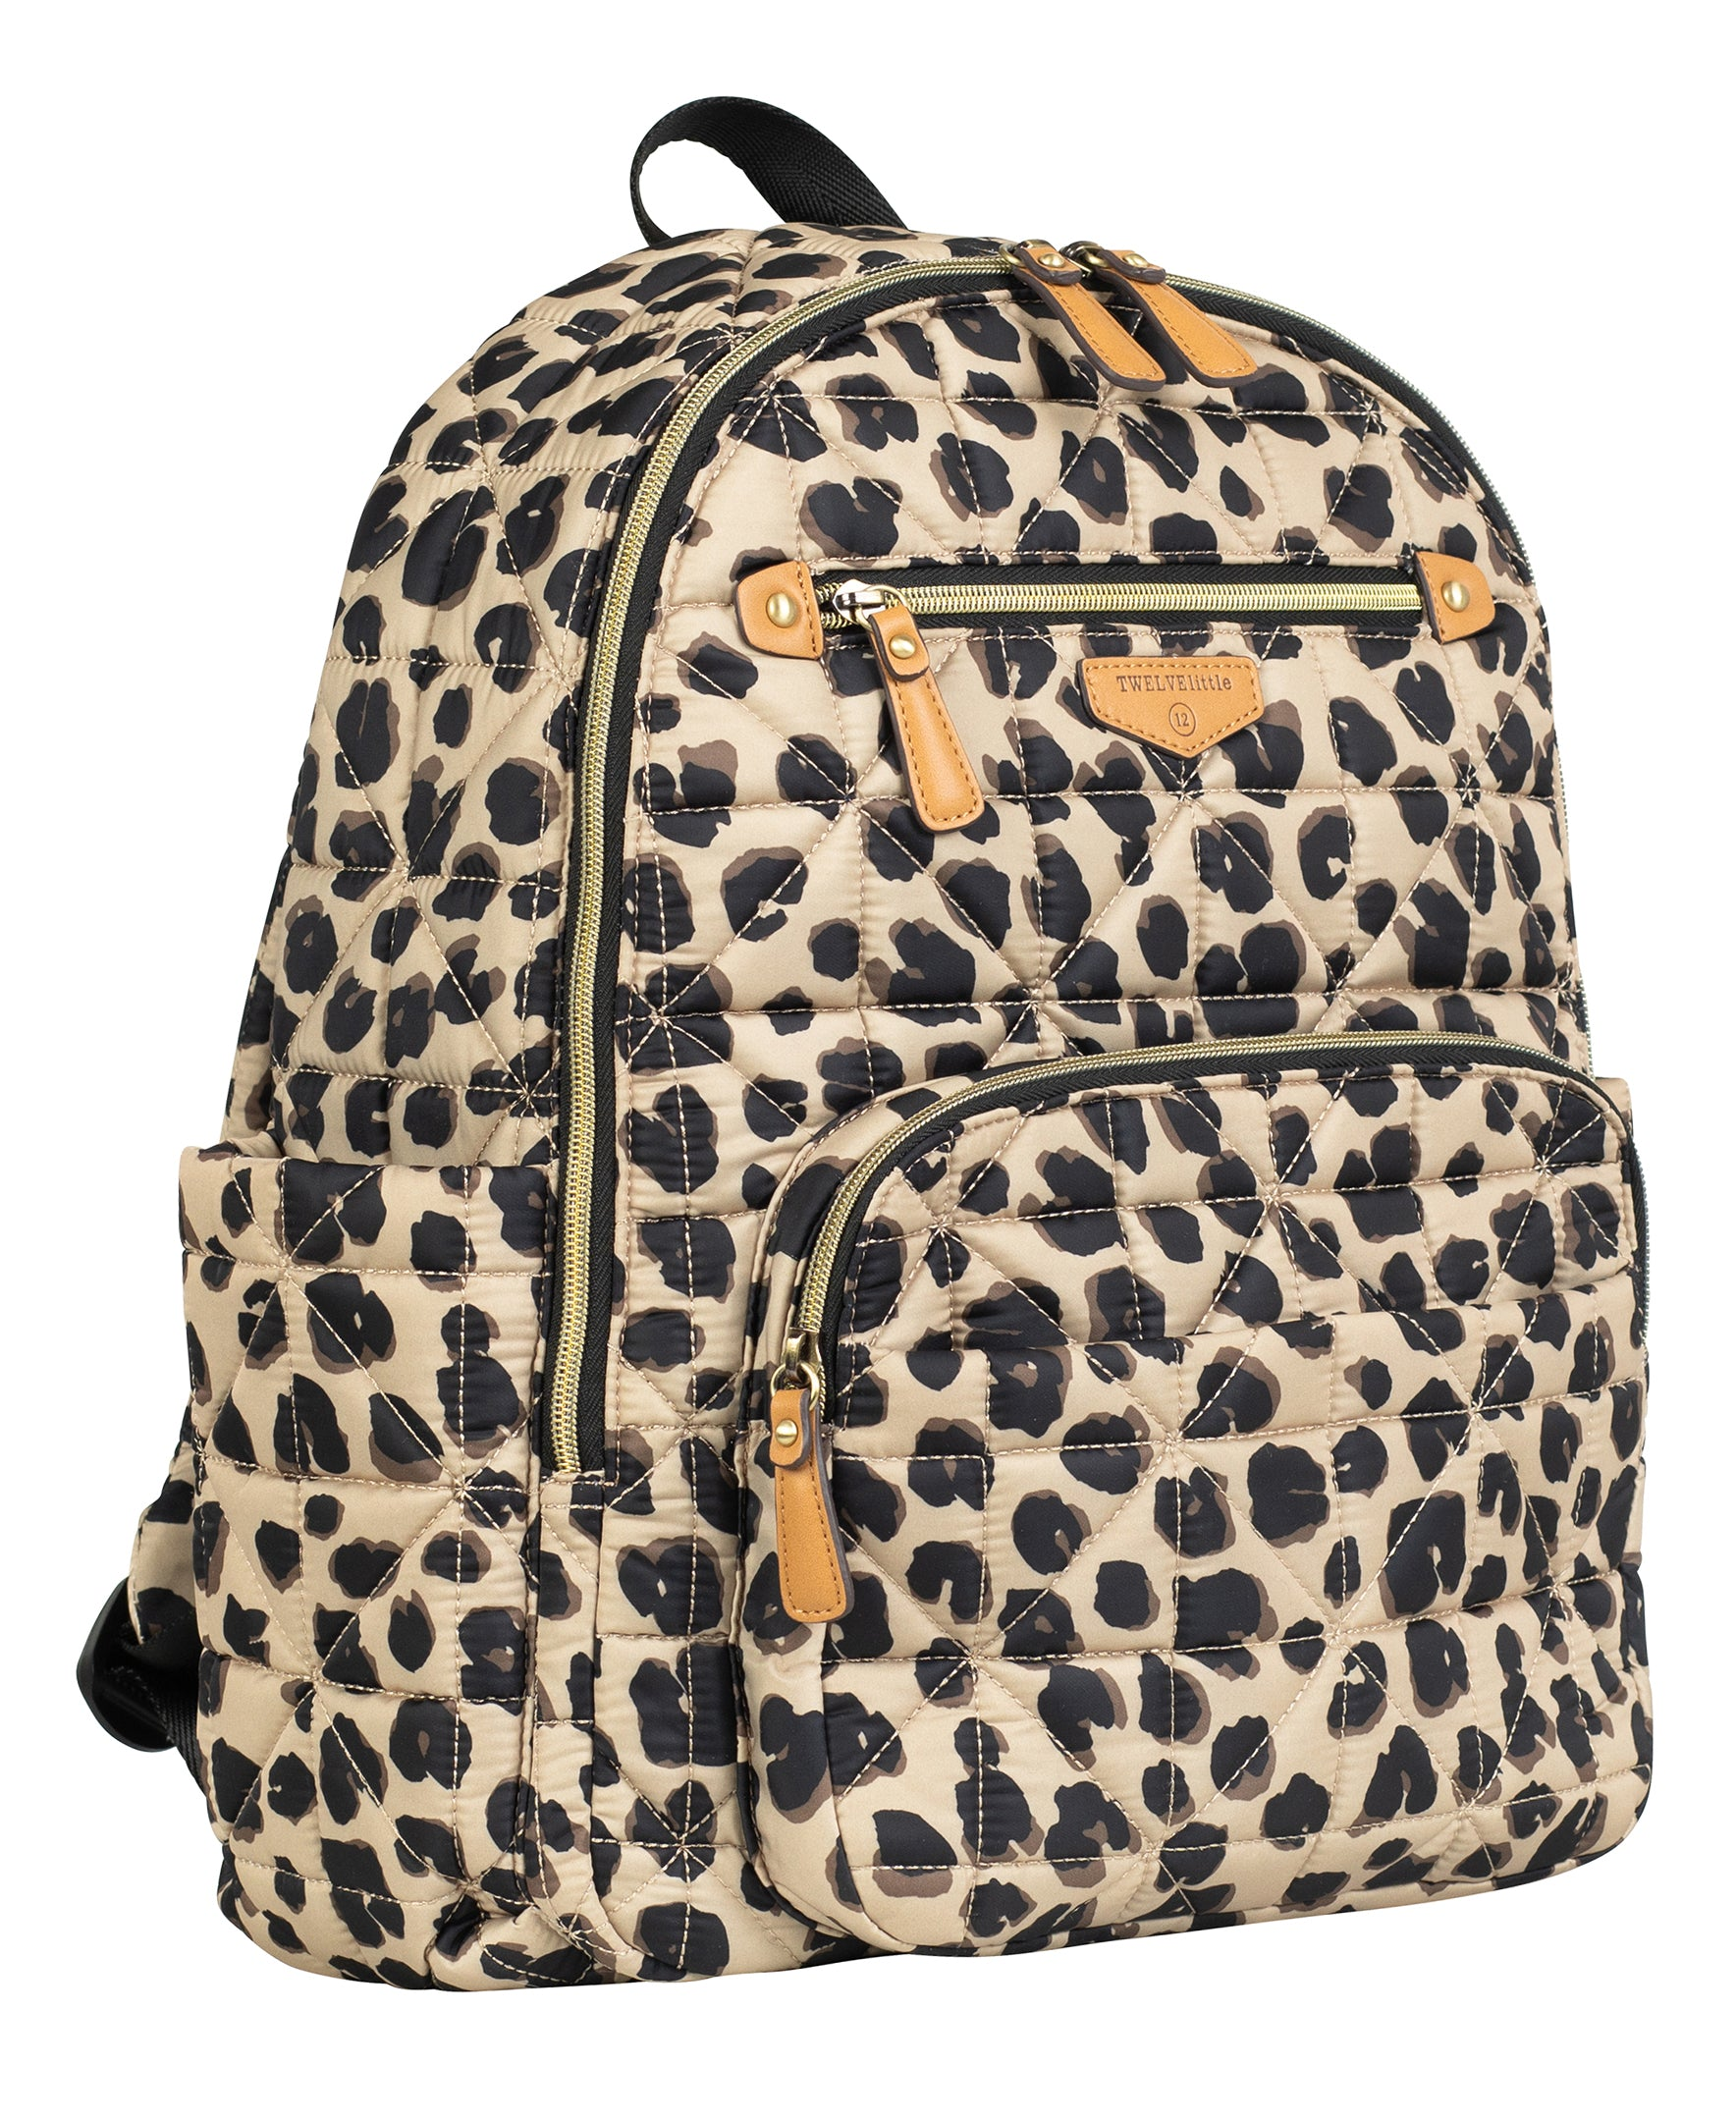 Side view of leopard companion backpack